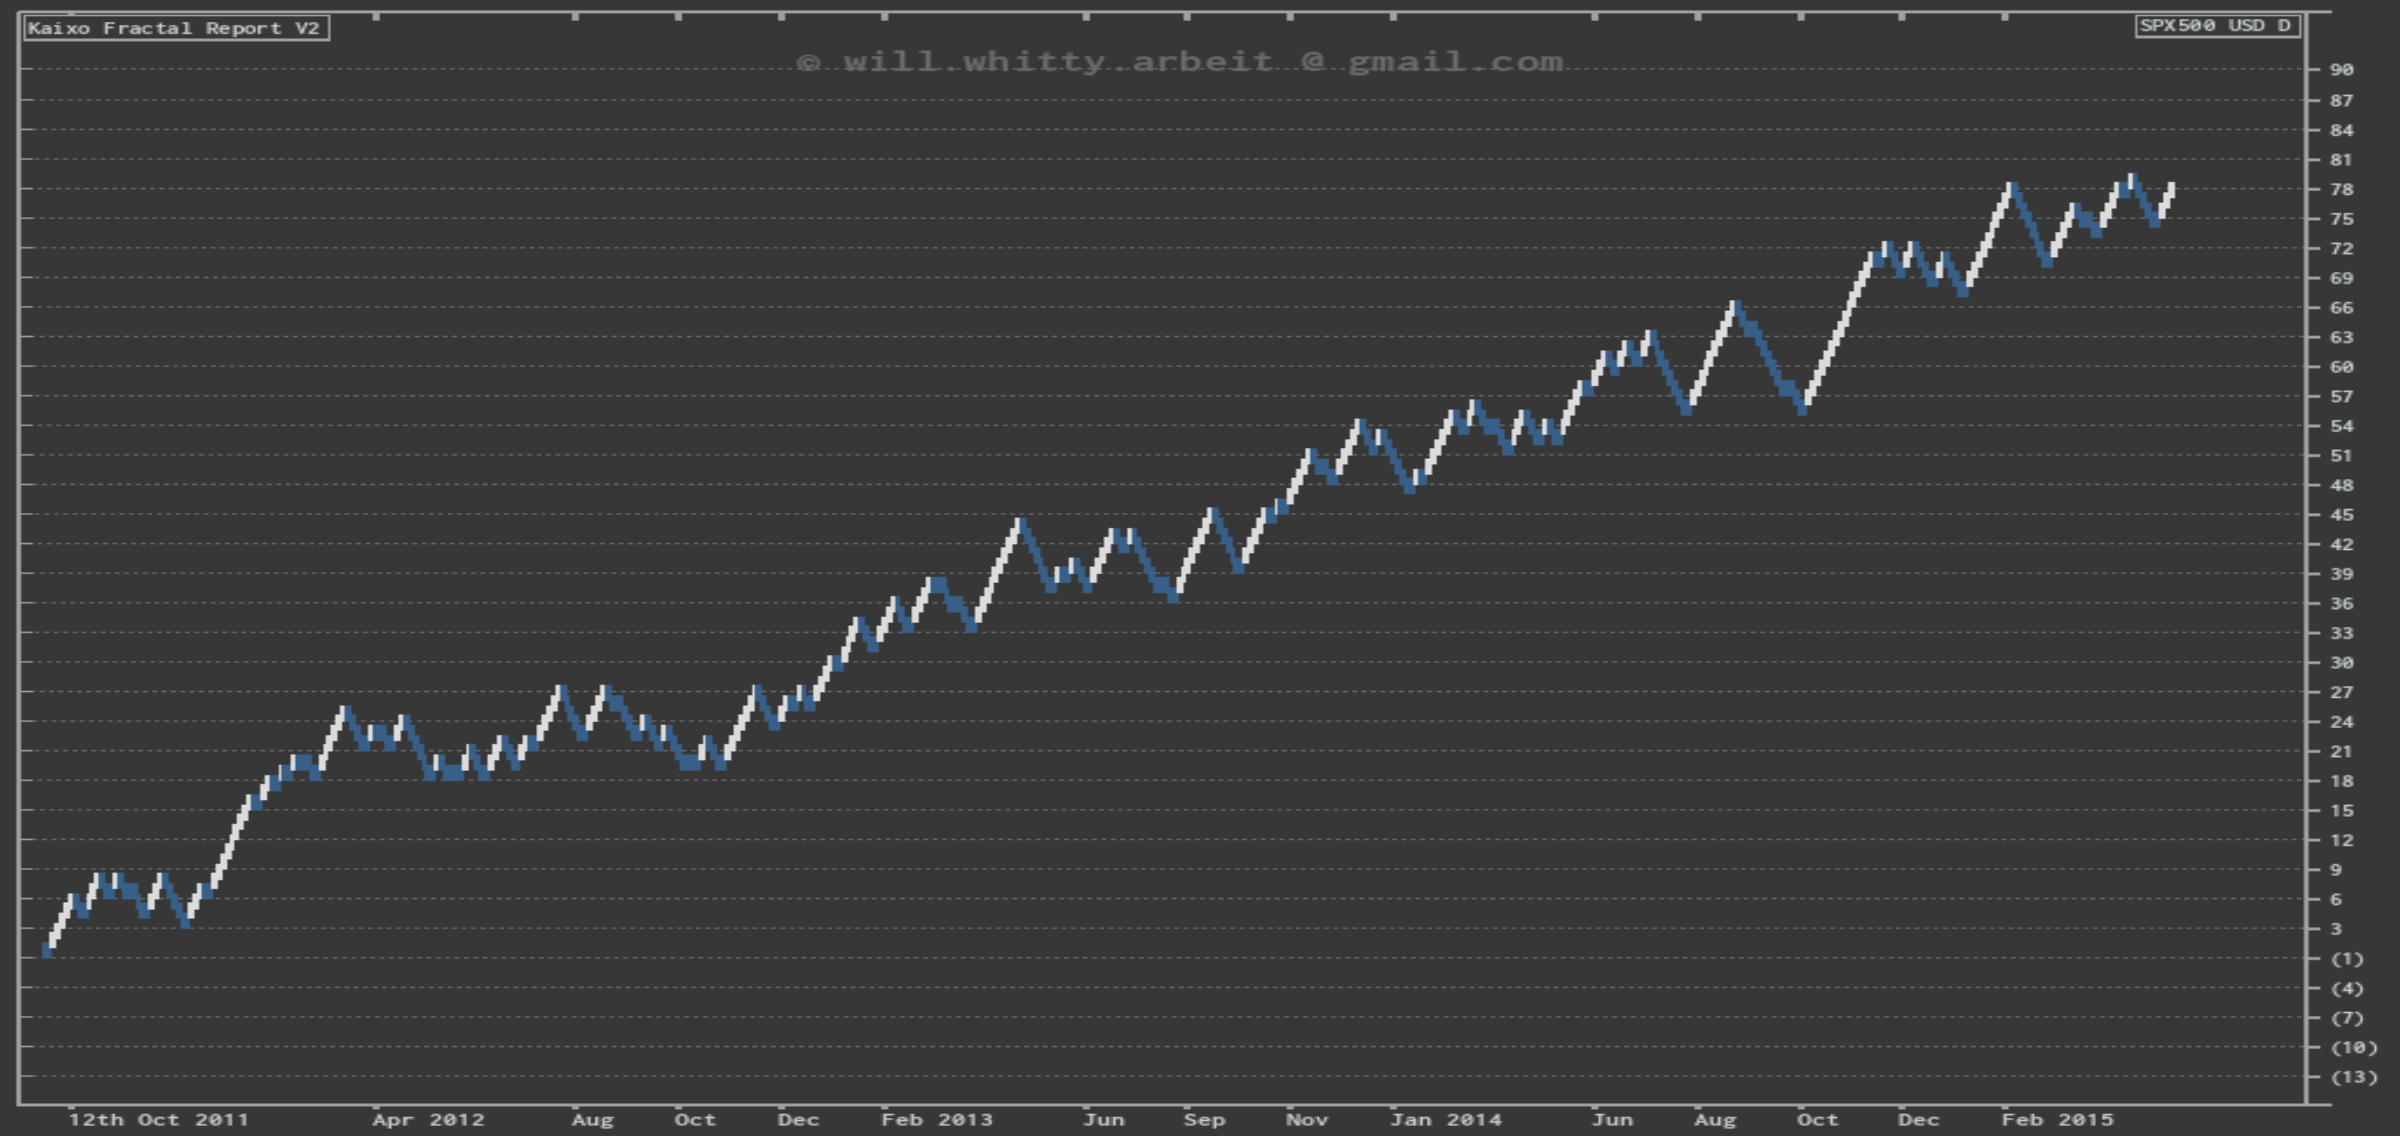 SPX_Daily.png